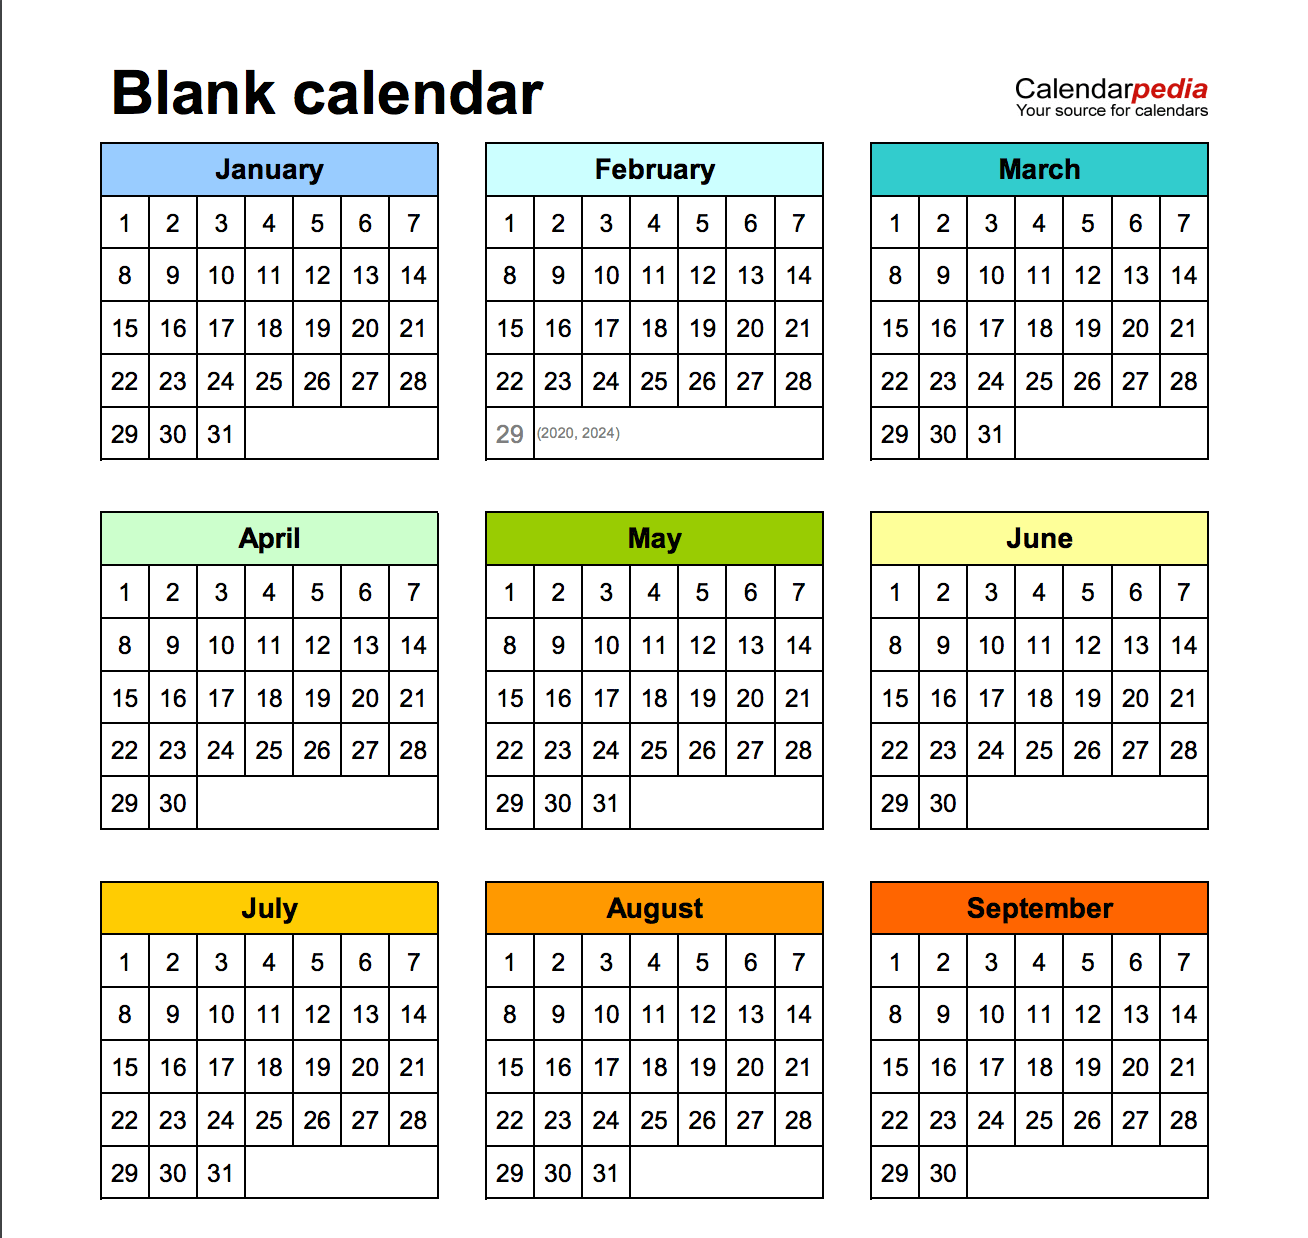 Blank Calendar Of : Blank calendar wonderfully printable templates